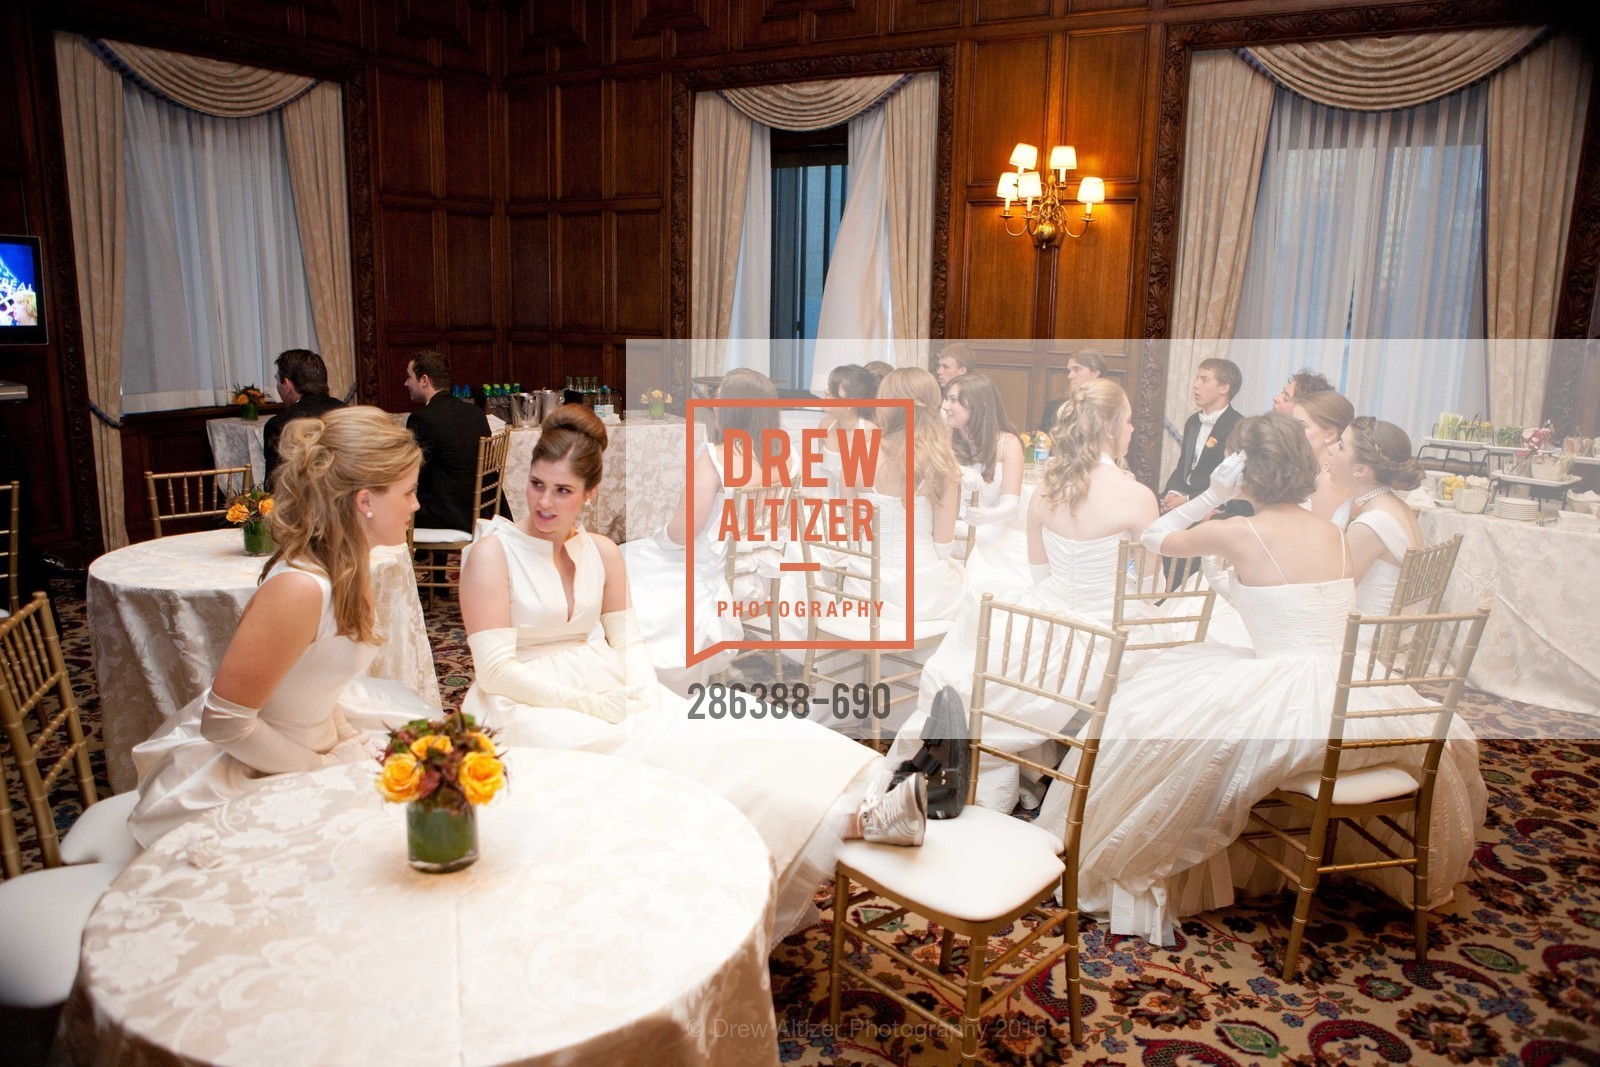 Atmosphere, 2009 Debutante Ball, Unknown, July 4th, 2008,Drew Altizer, Drew Altizer Photography, full-service agency, private events, San Francisco photographer, photographer california